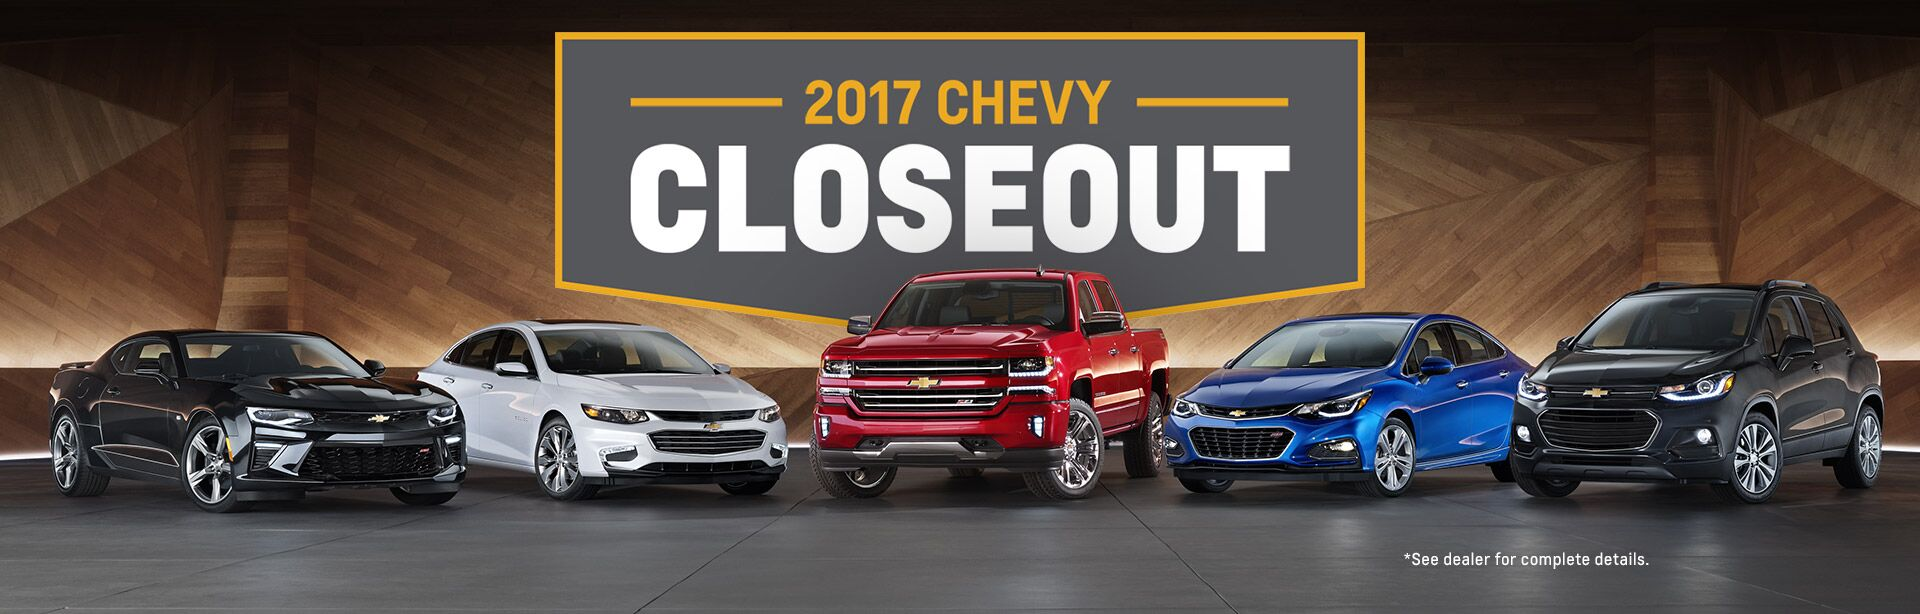 2017 Chevrolet Closeout